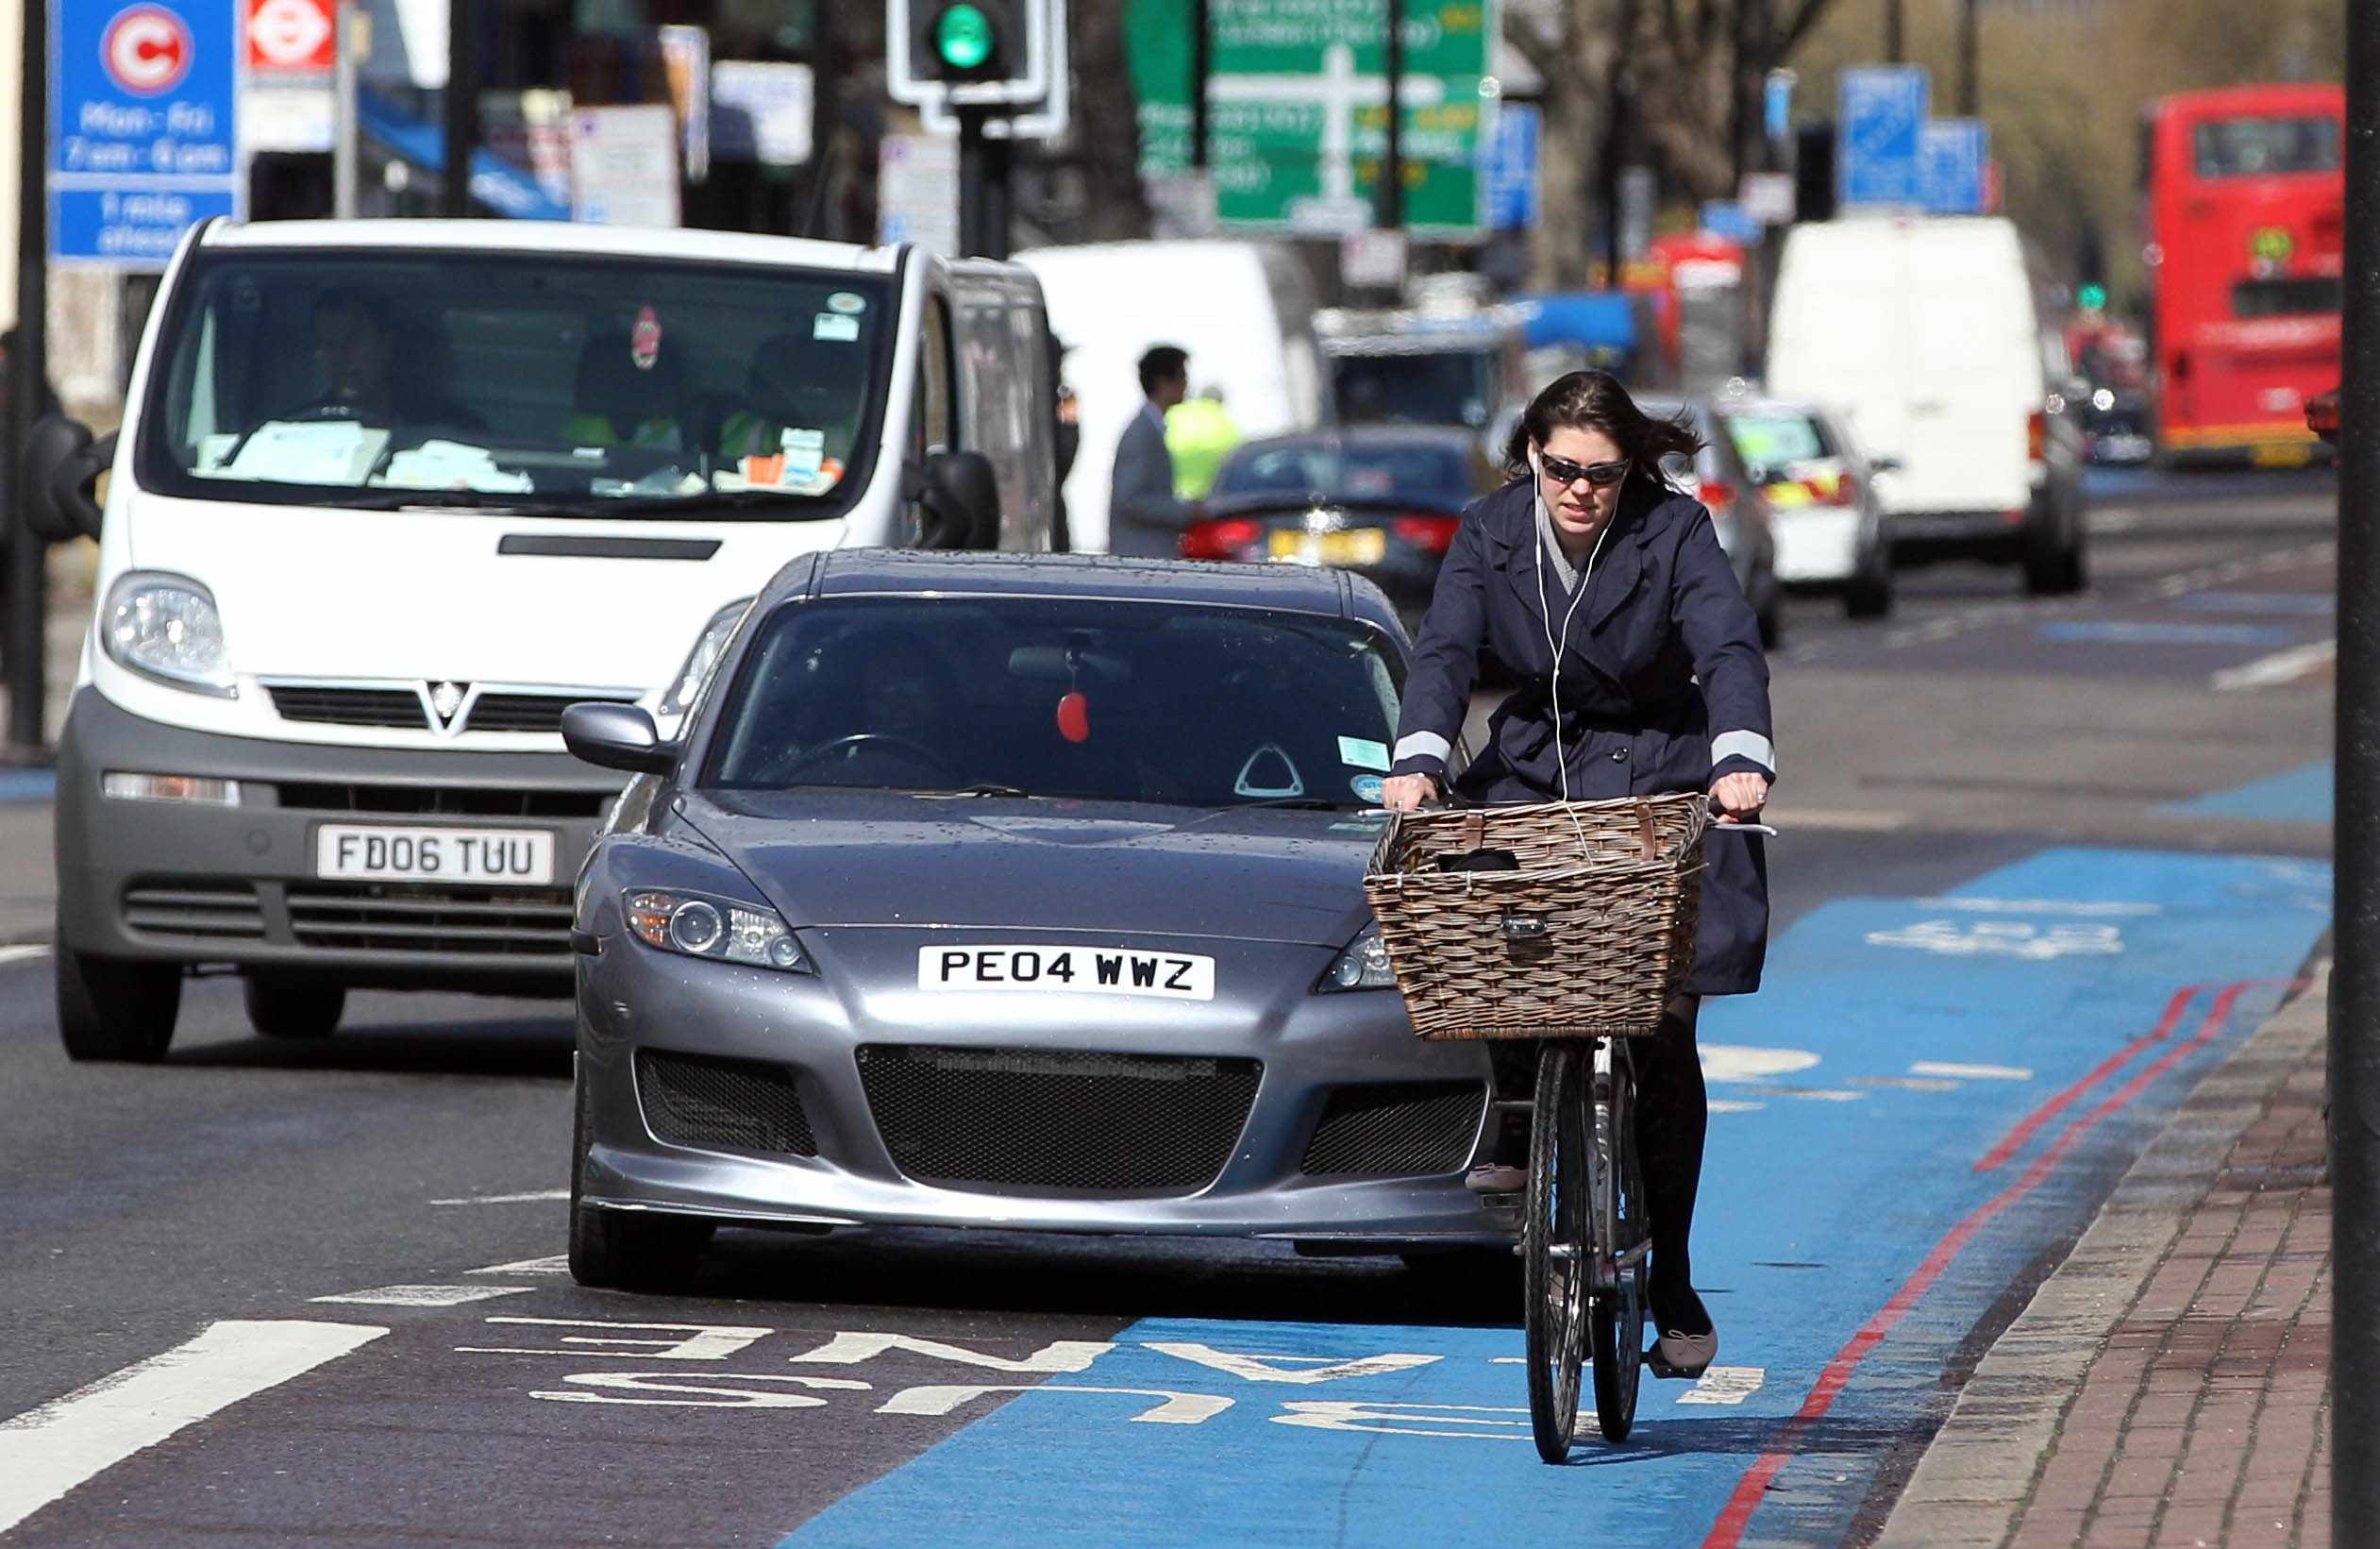 A motorist drives in the bus lane behind a cyclist on an unbordered section of Cycle Superhighway 7